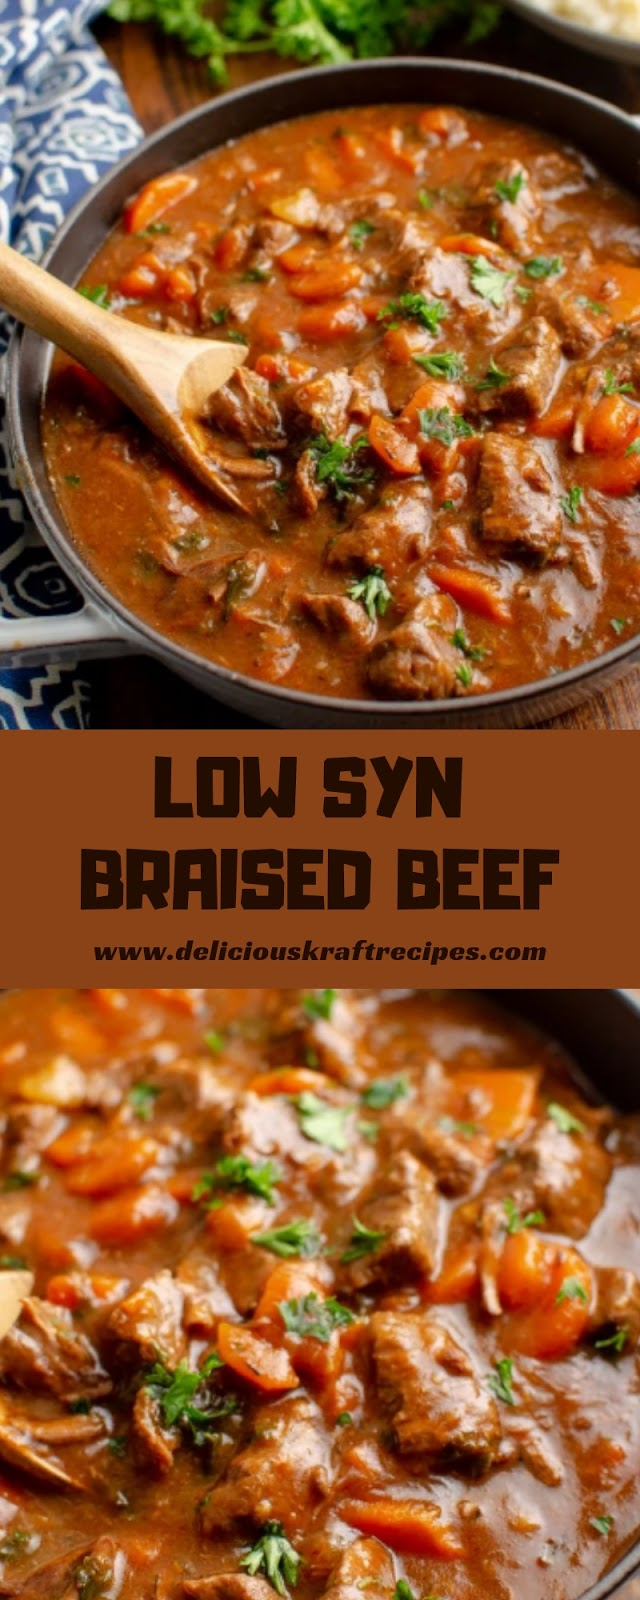 LOW SYN BRAISED BEEF